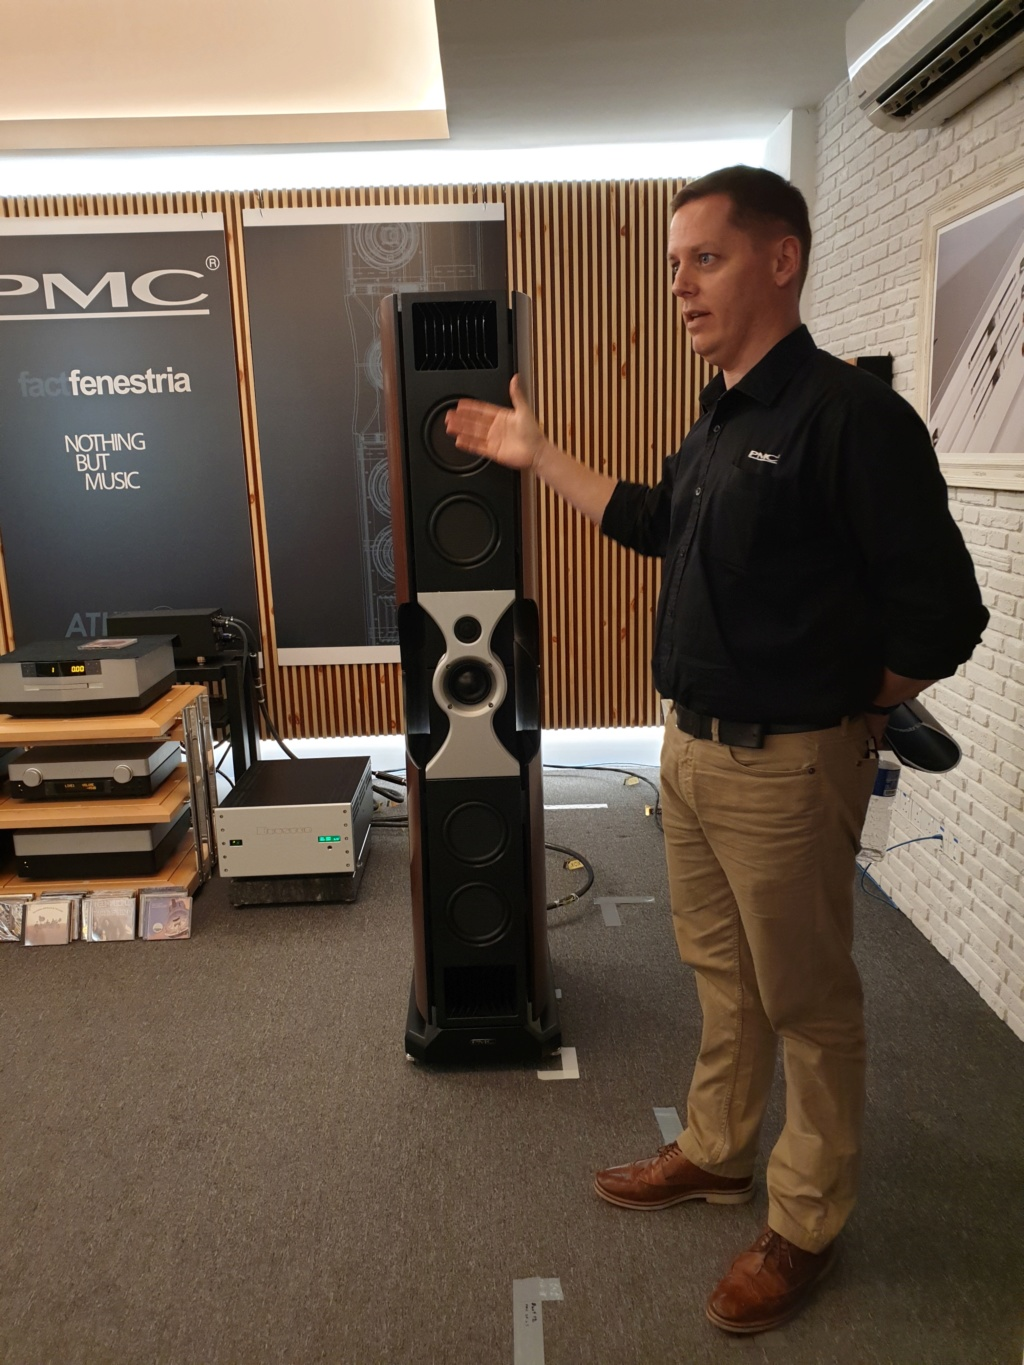 AV Designs launches PMC's high-end Fenestria loudspeakers in Malaysia 20181118